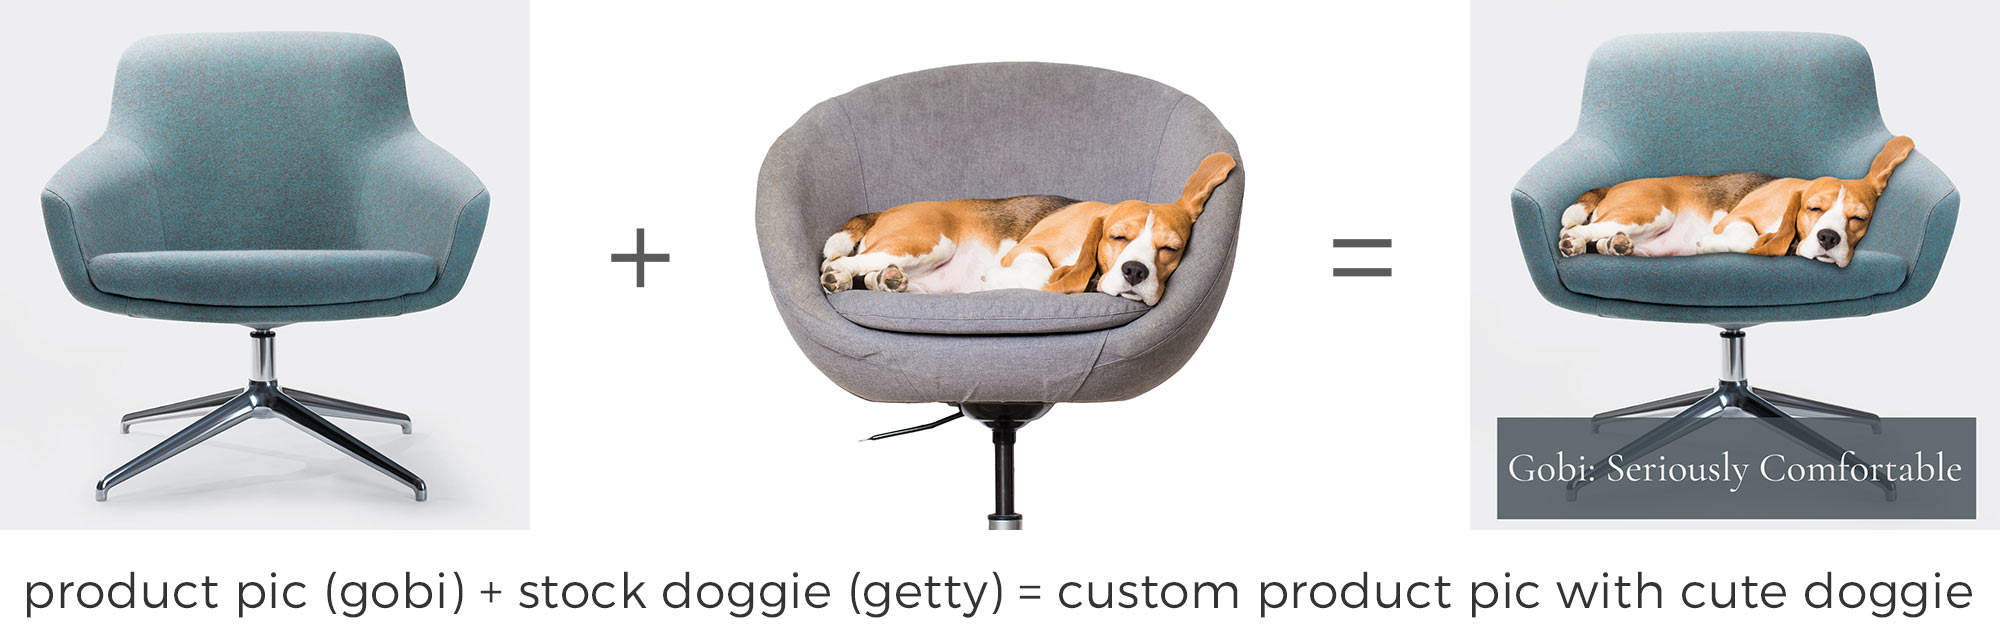 product pic (gobi) + stock doggie (getty) = custom product pic with cute doggie